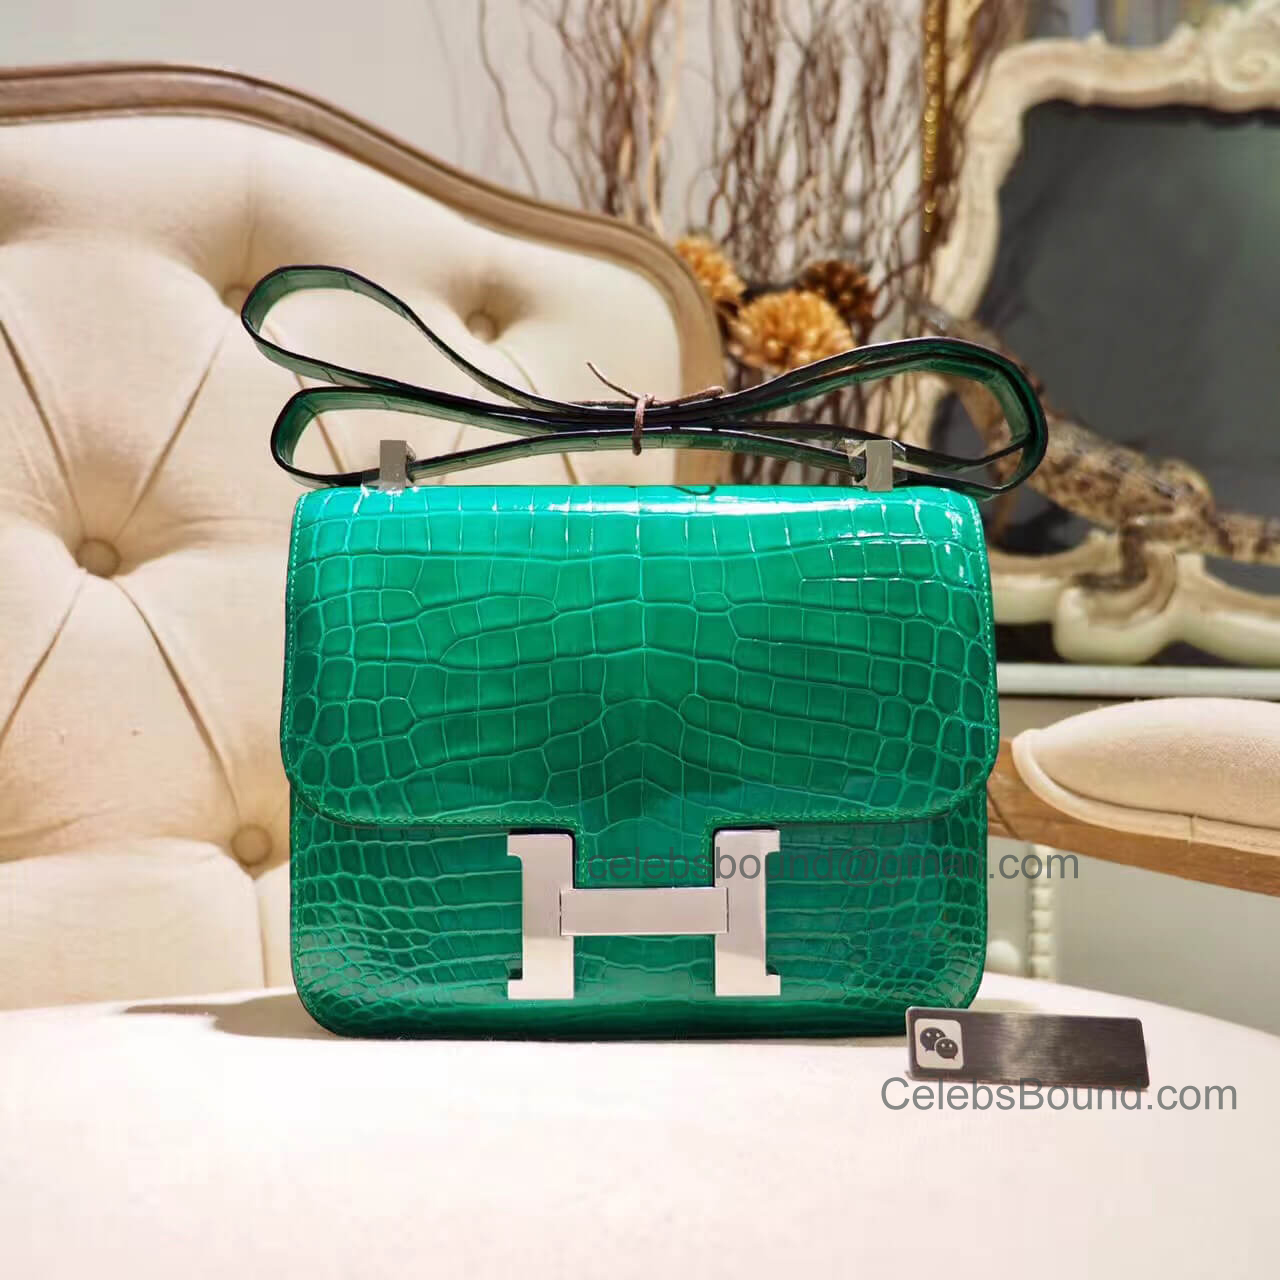 Replica Hermes Constance 23 Bag in 6q Vert Emeraude Shiny Nile Croc PHW